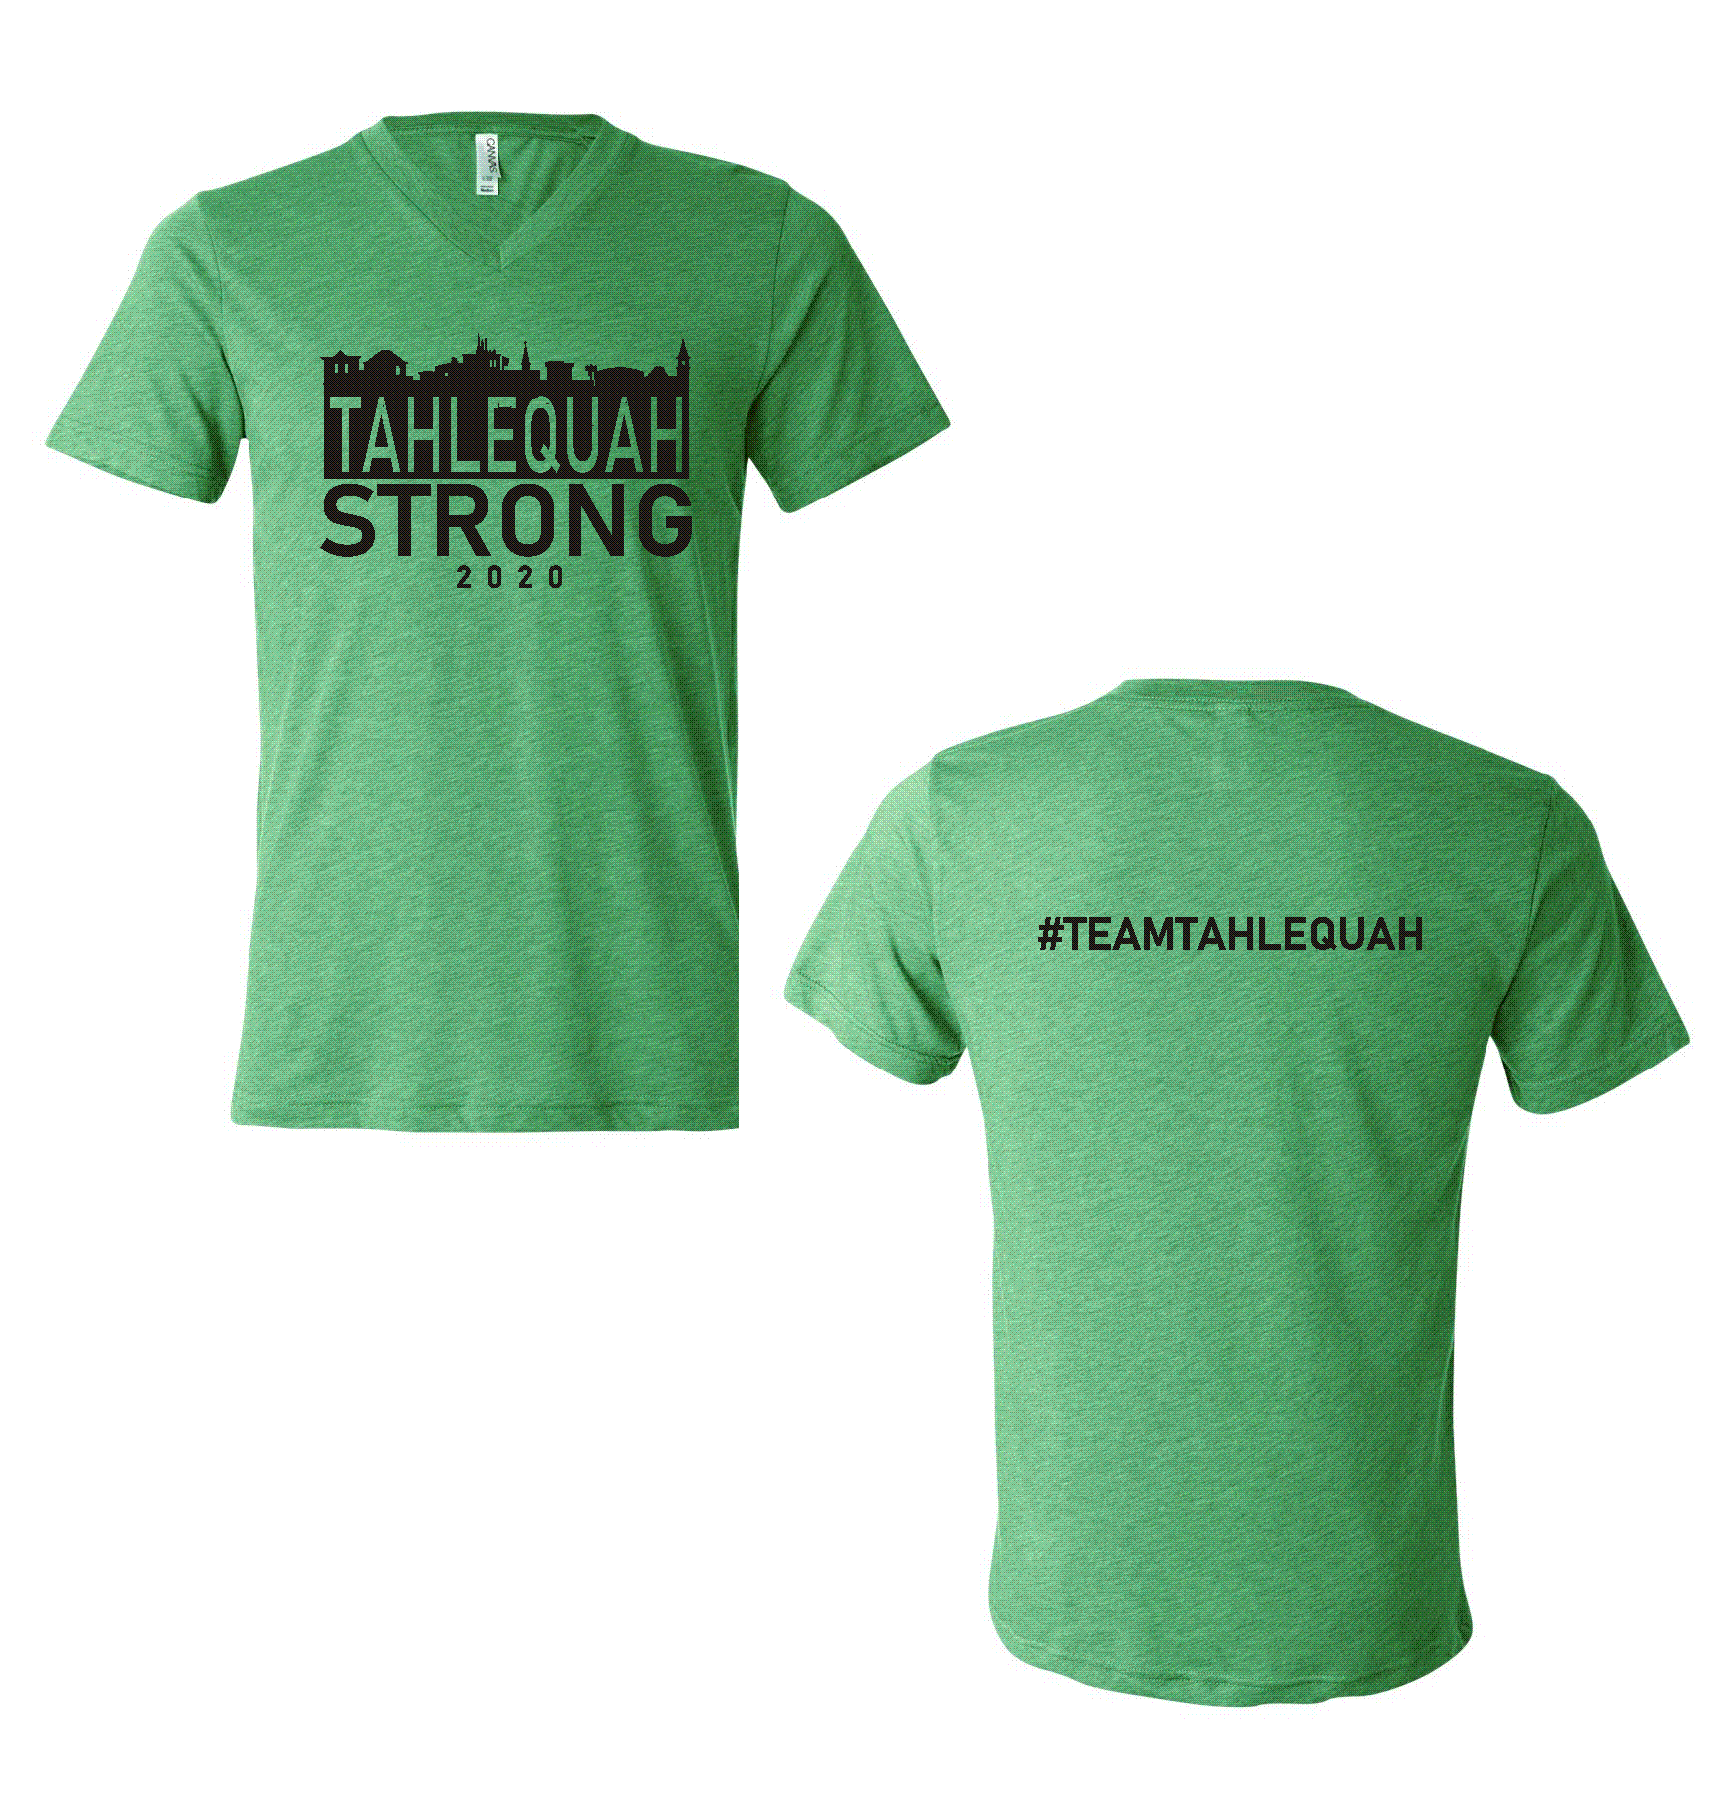 Tahlequah Strong GREEN V-NECK PREORDER